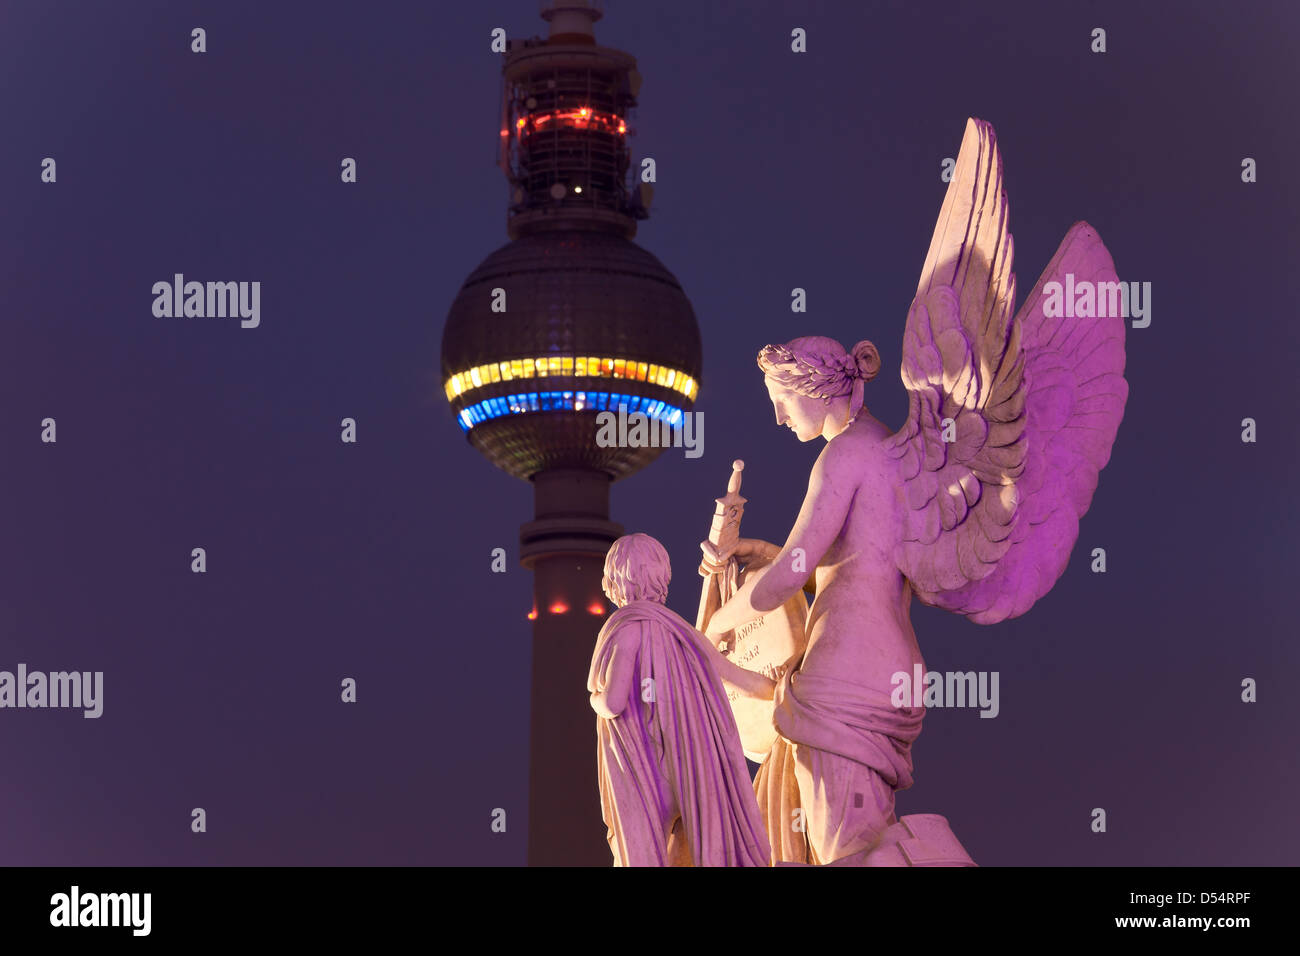 Berlin, Germany, figure Nike teaches the boy hero legends and the Berlin TV Tower - Stock Image